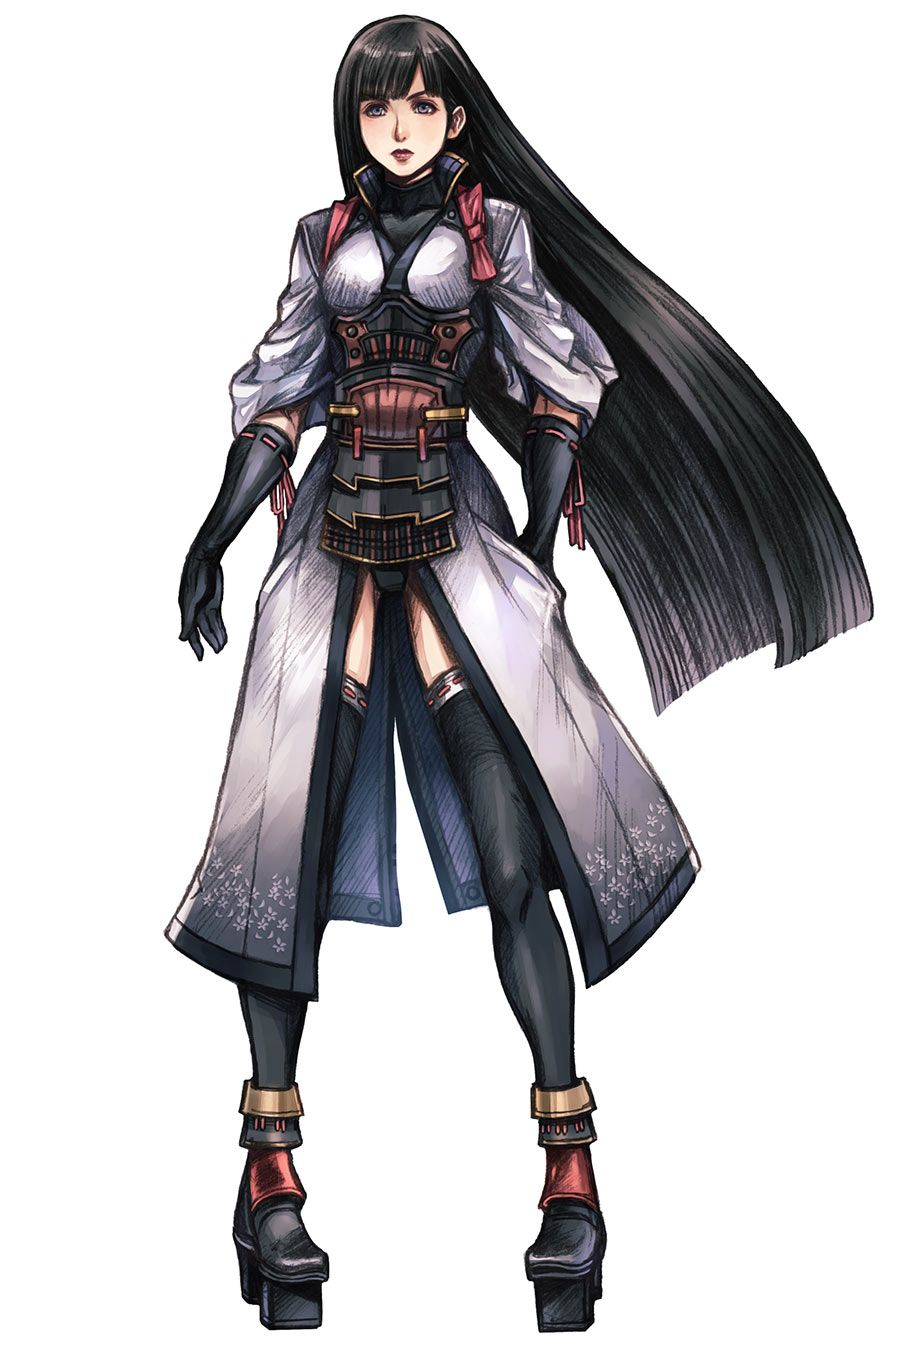 Character Design Xenoblade : Female character design occult pinterest